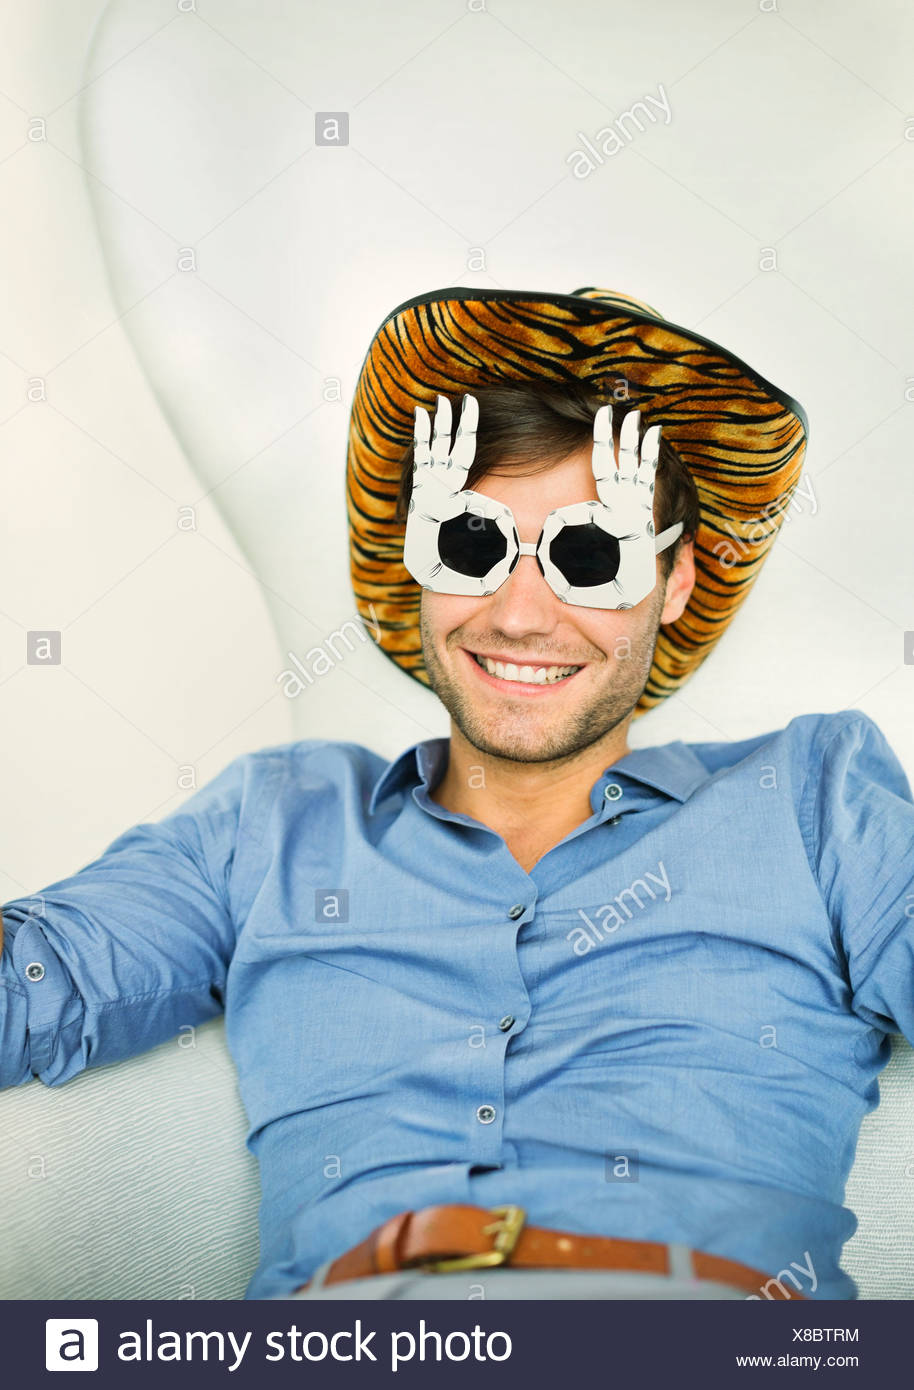 Smiling man wearing silly glasses - Stock Image